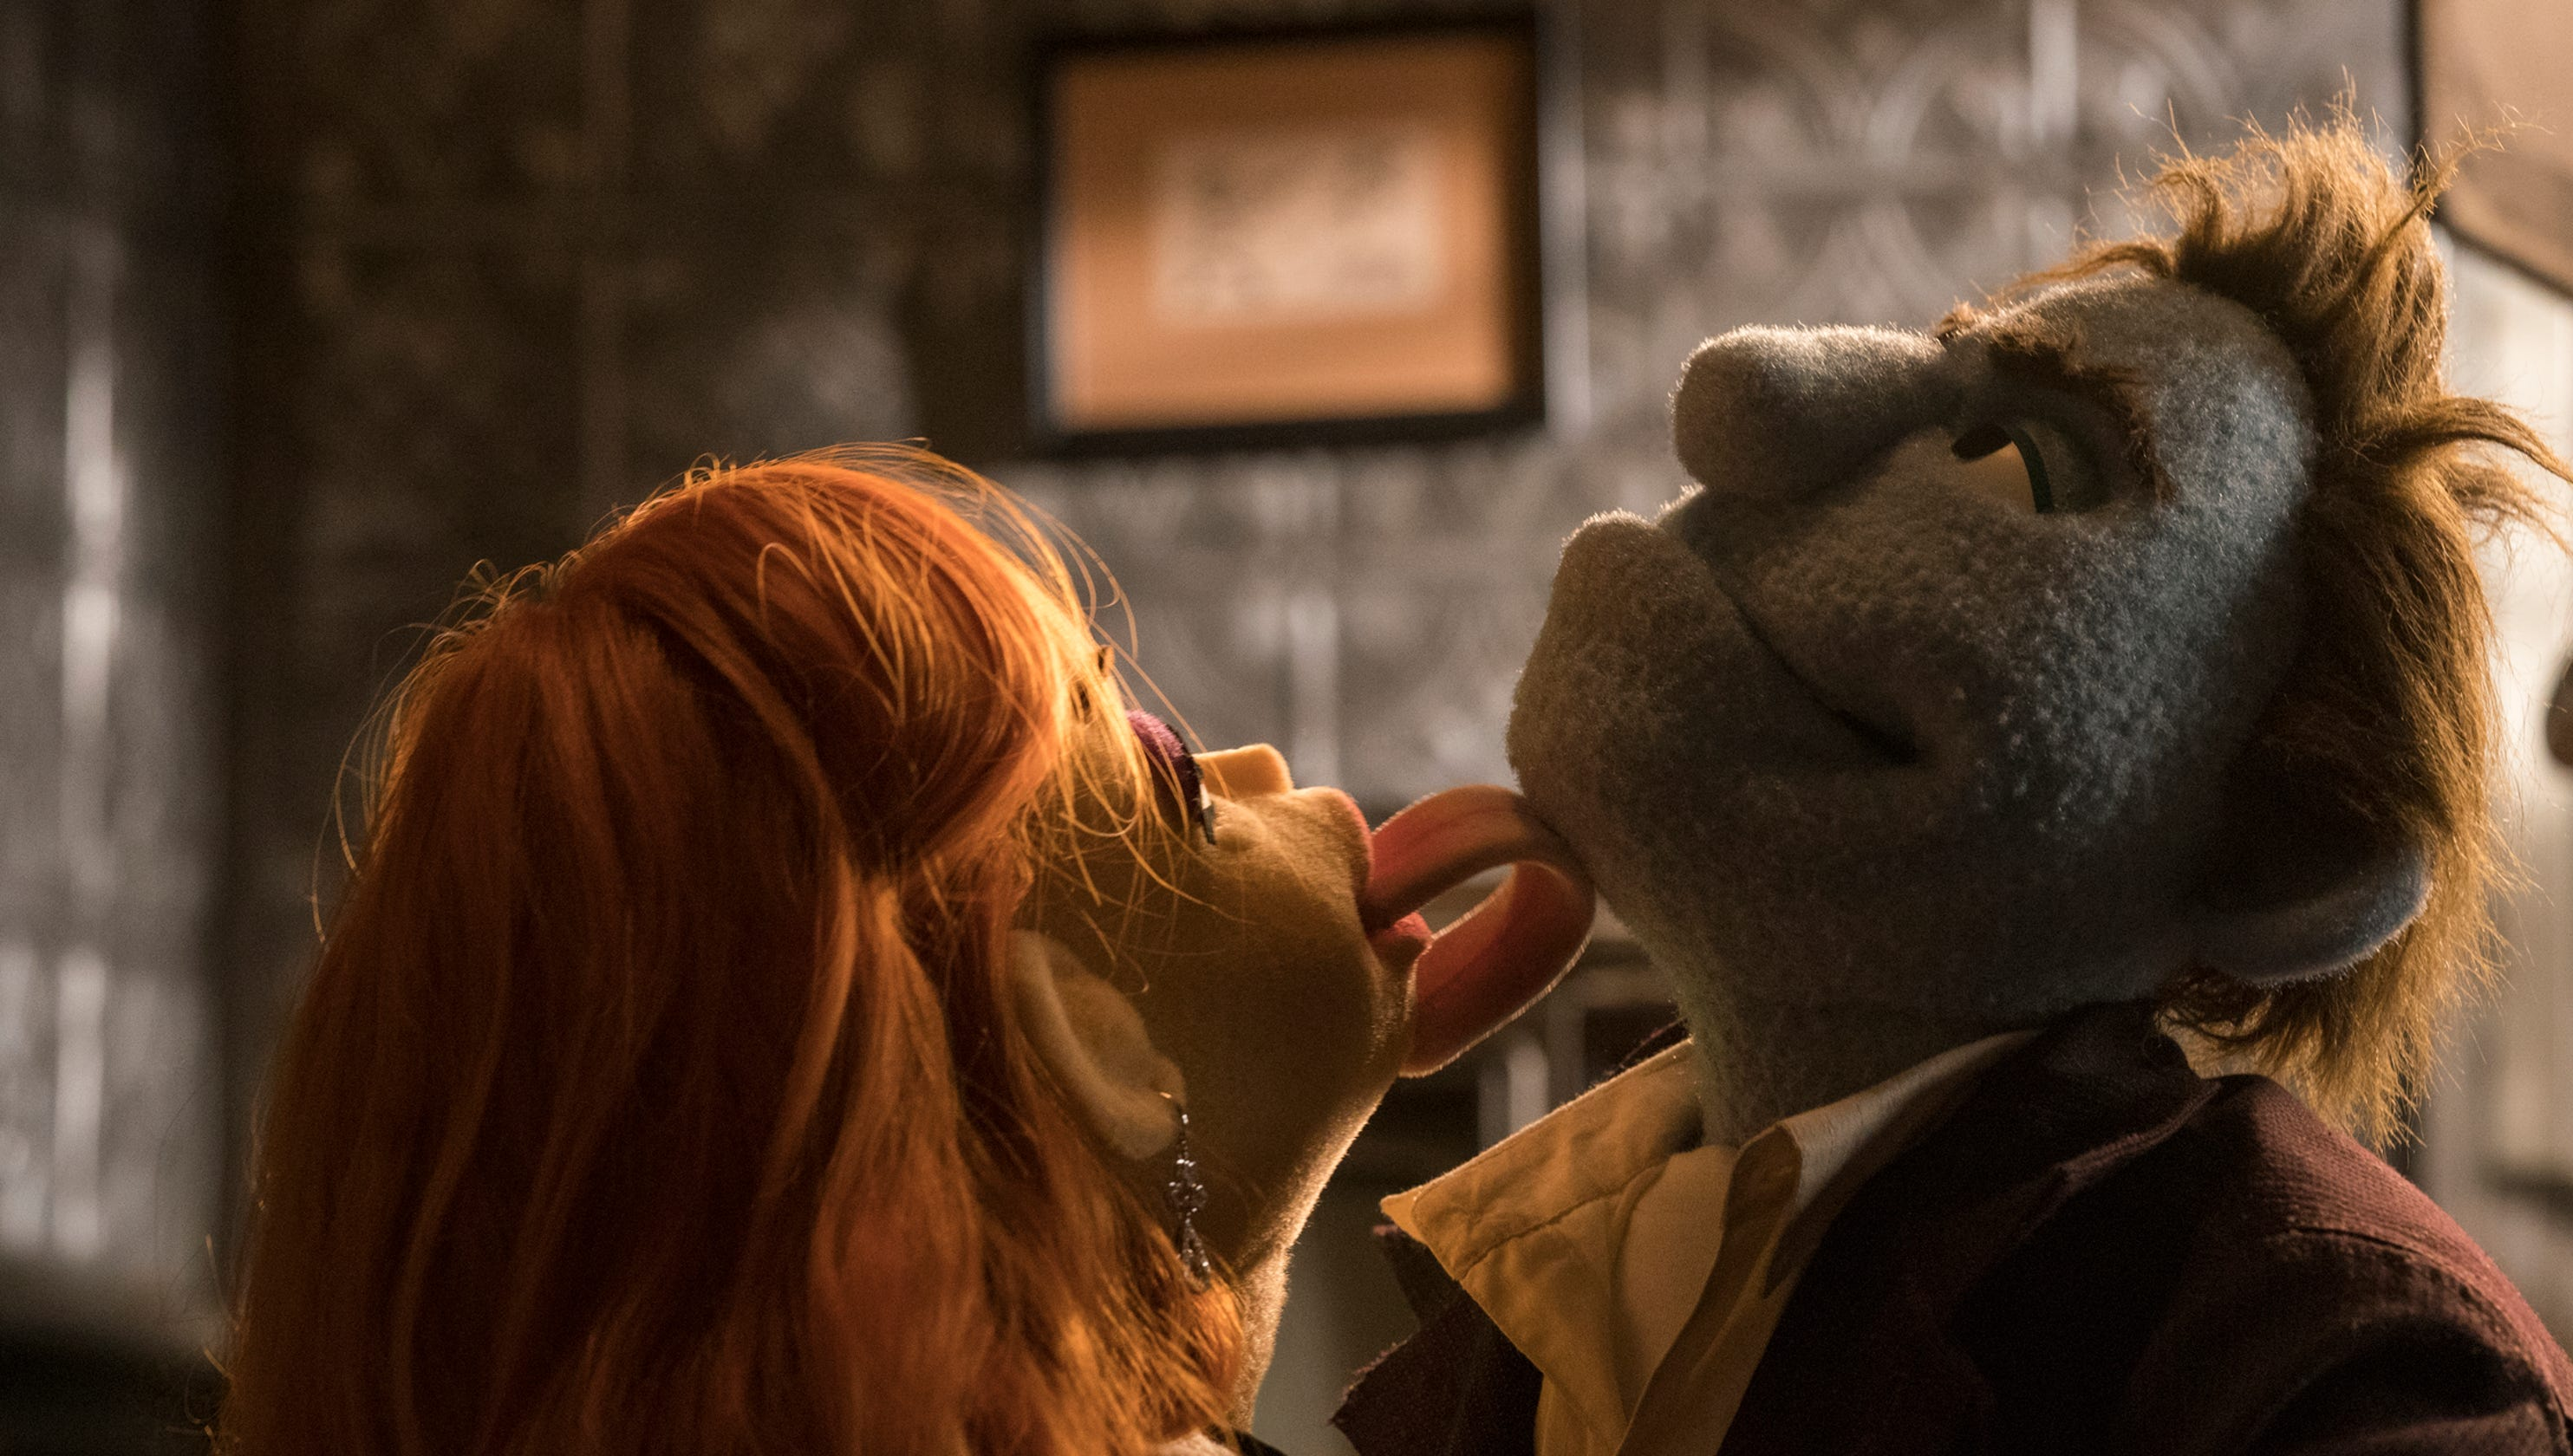 32627b1794 Spoilers! The most shocking 'Happytime Murders' moments prove these puppets  ain't Muppets